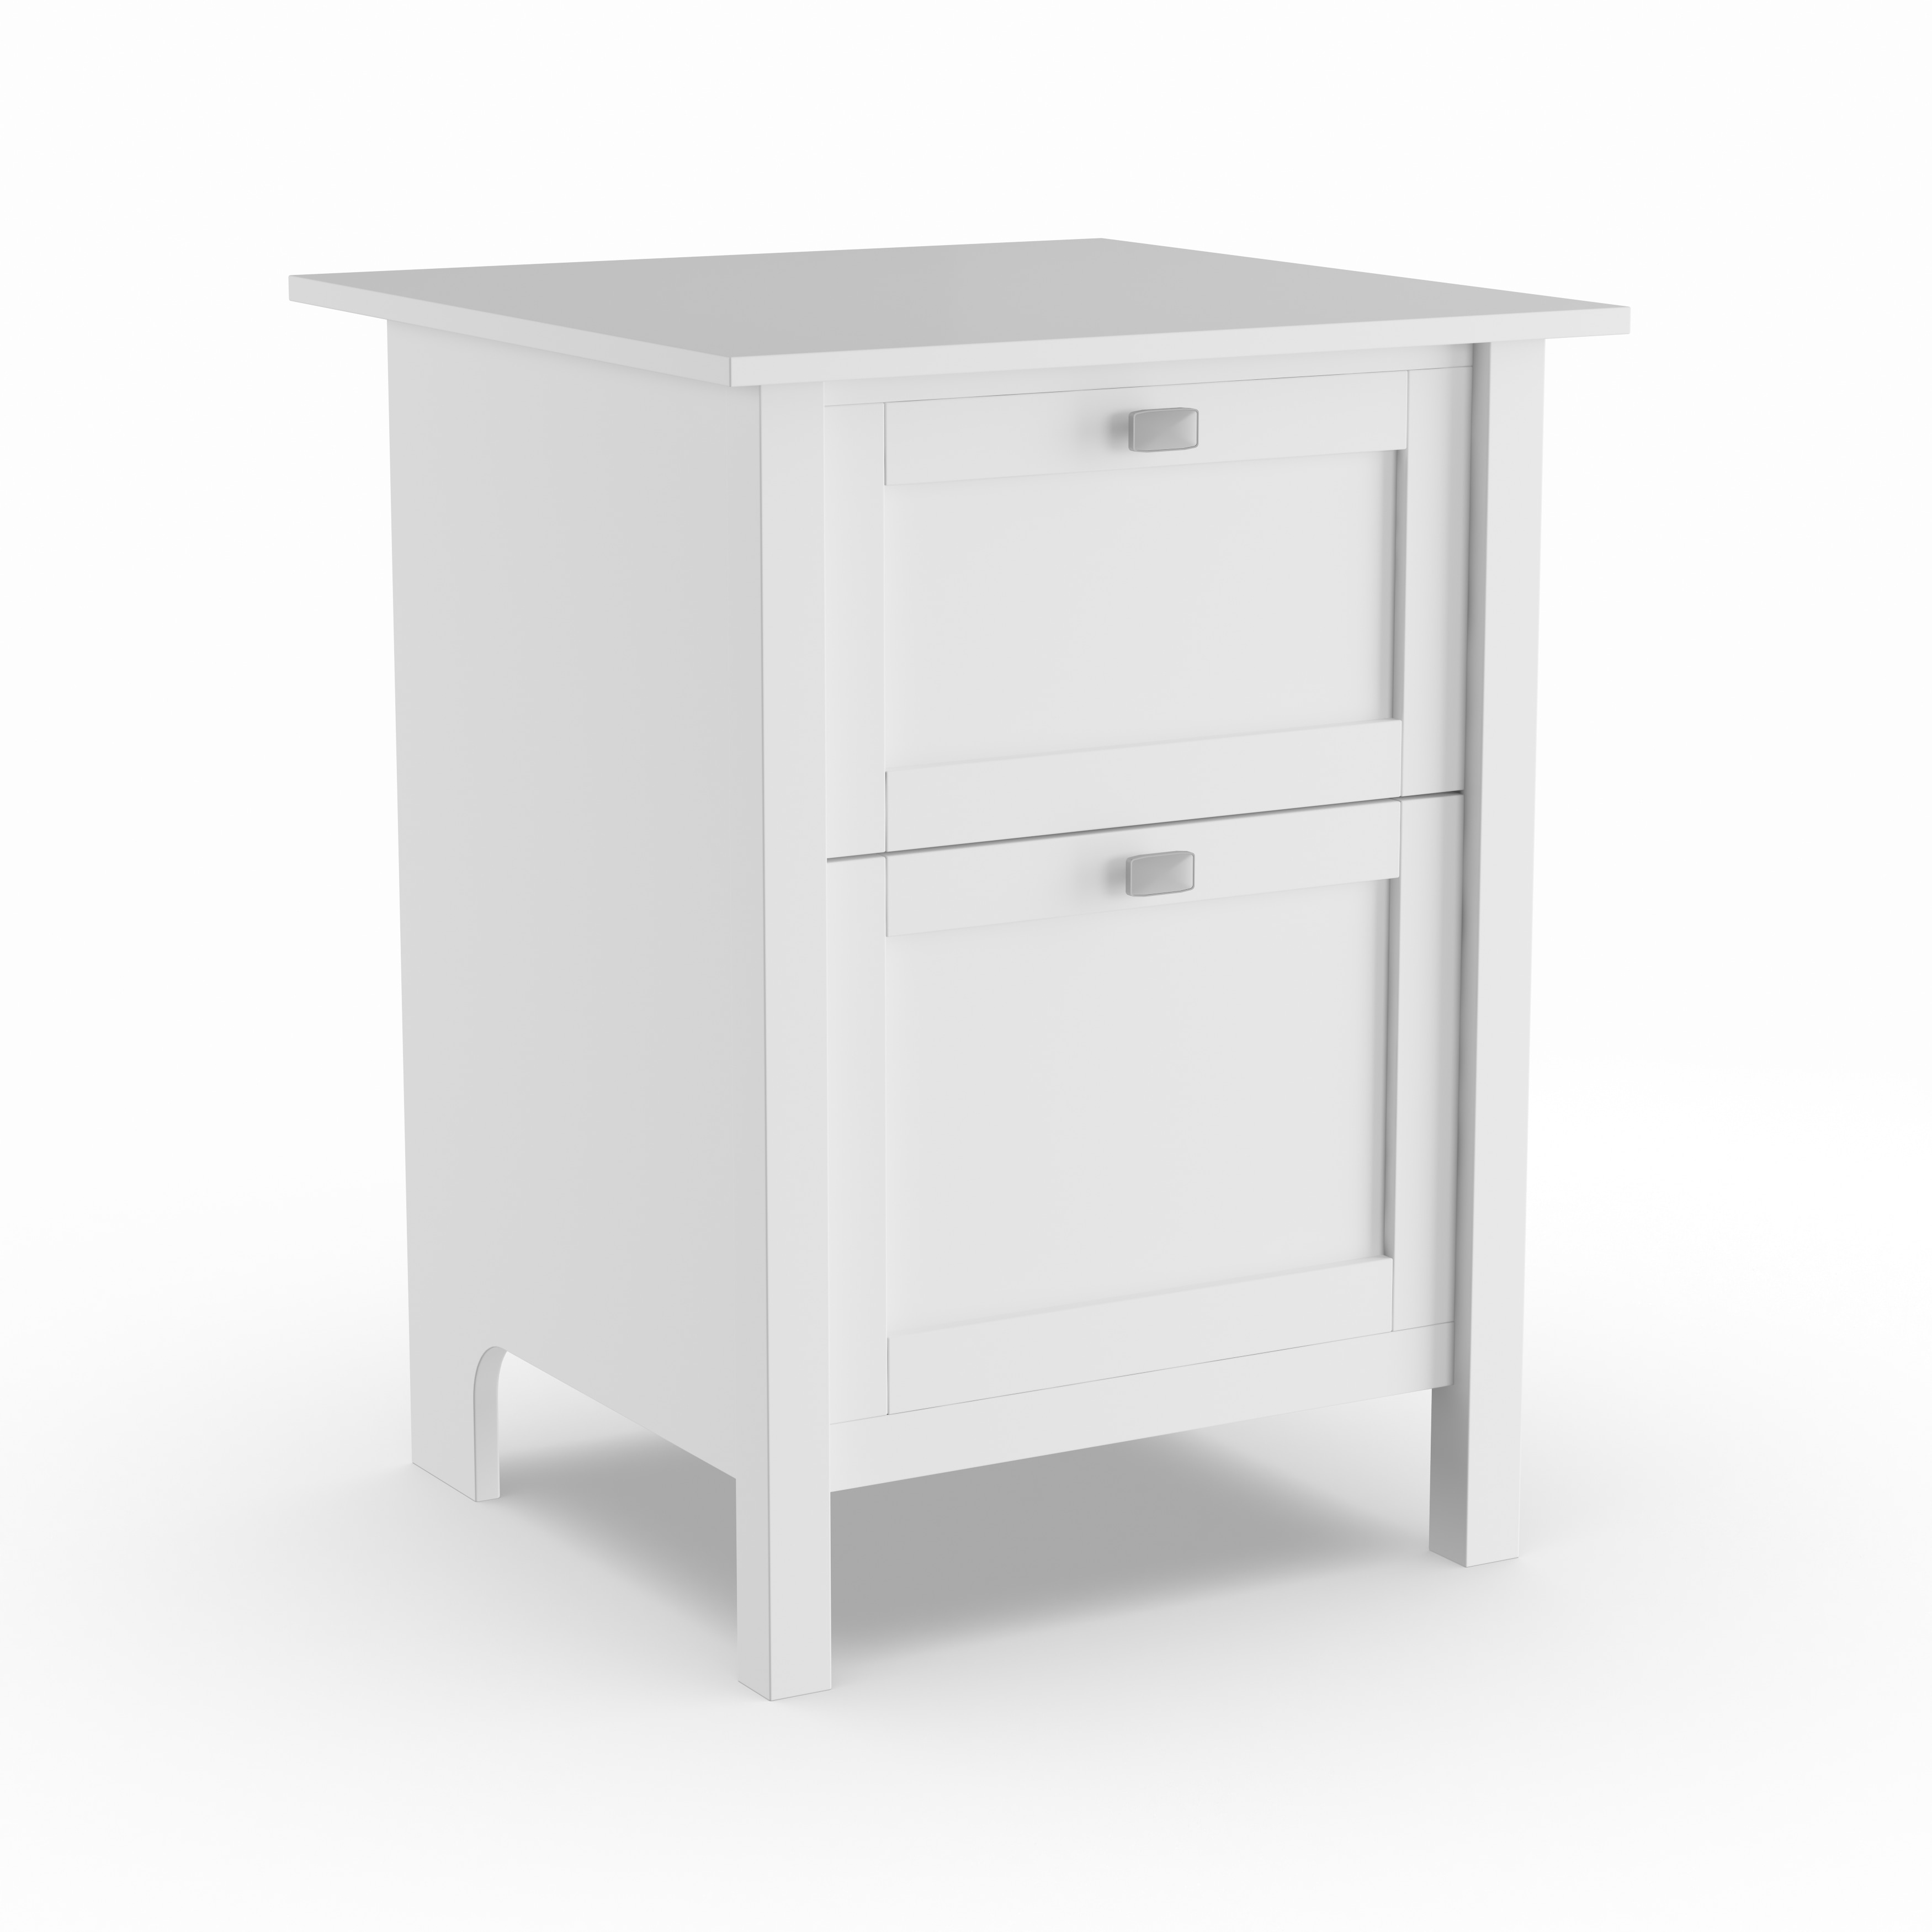 2 Drawer File Cabinet In Pure White